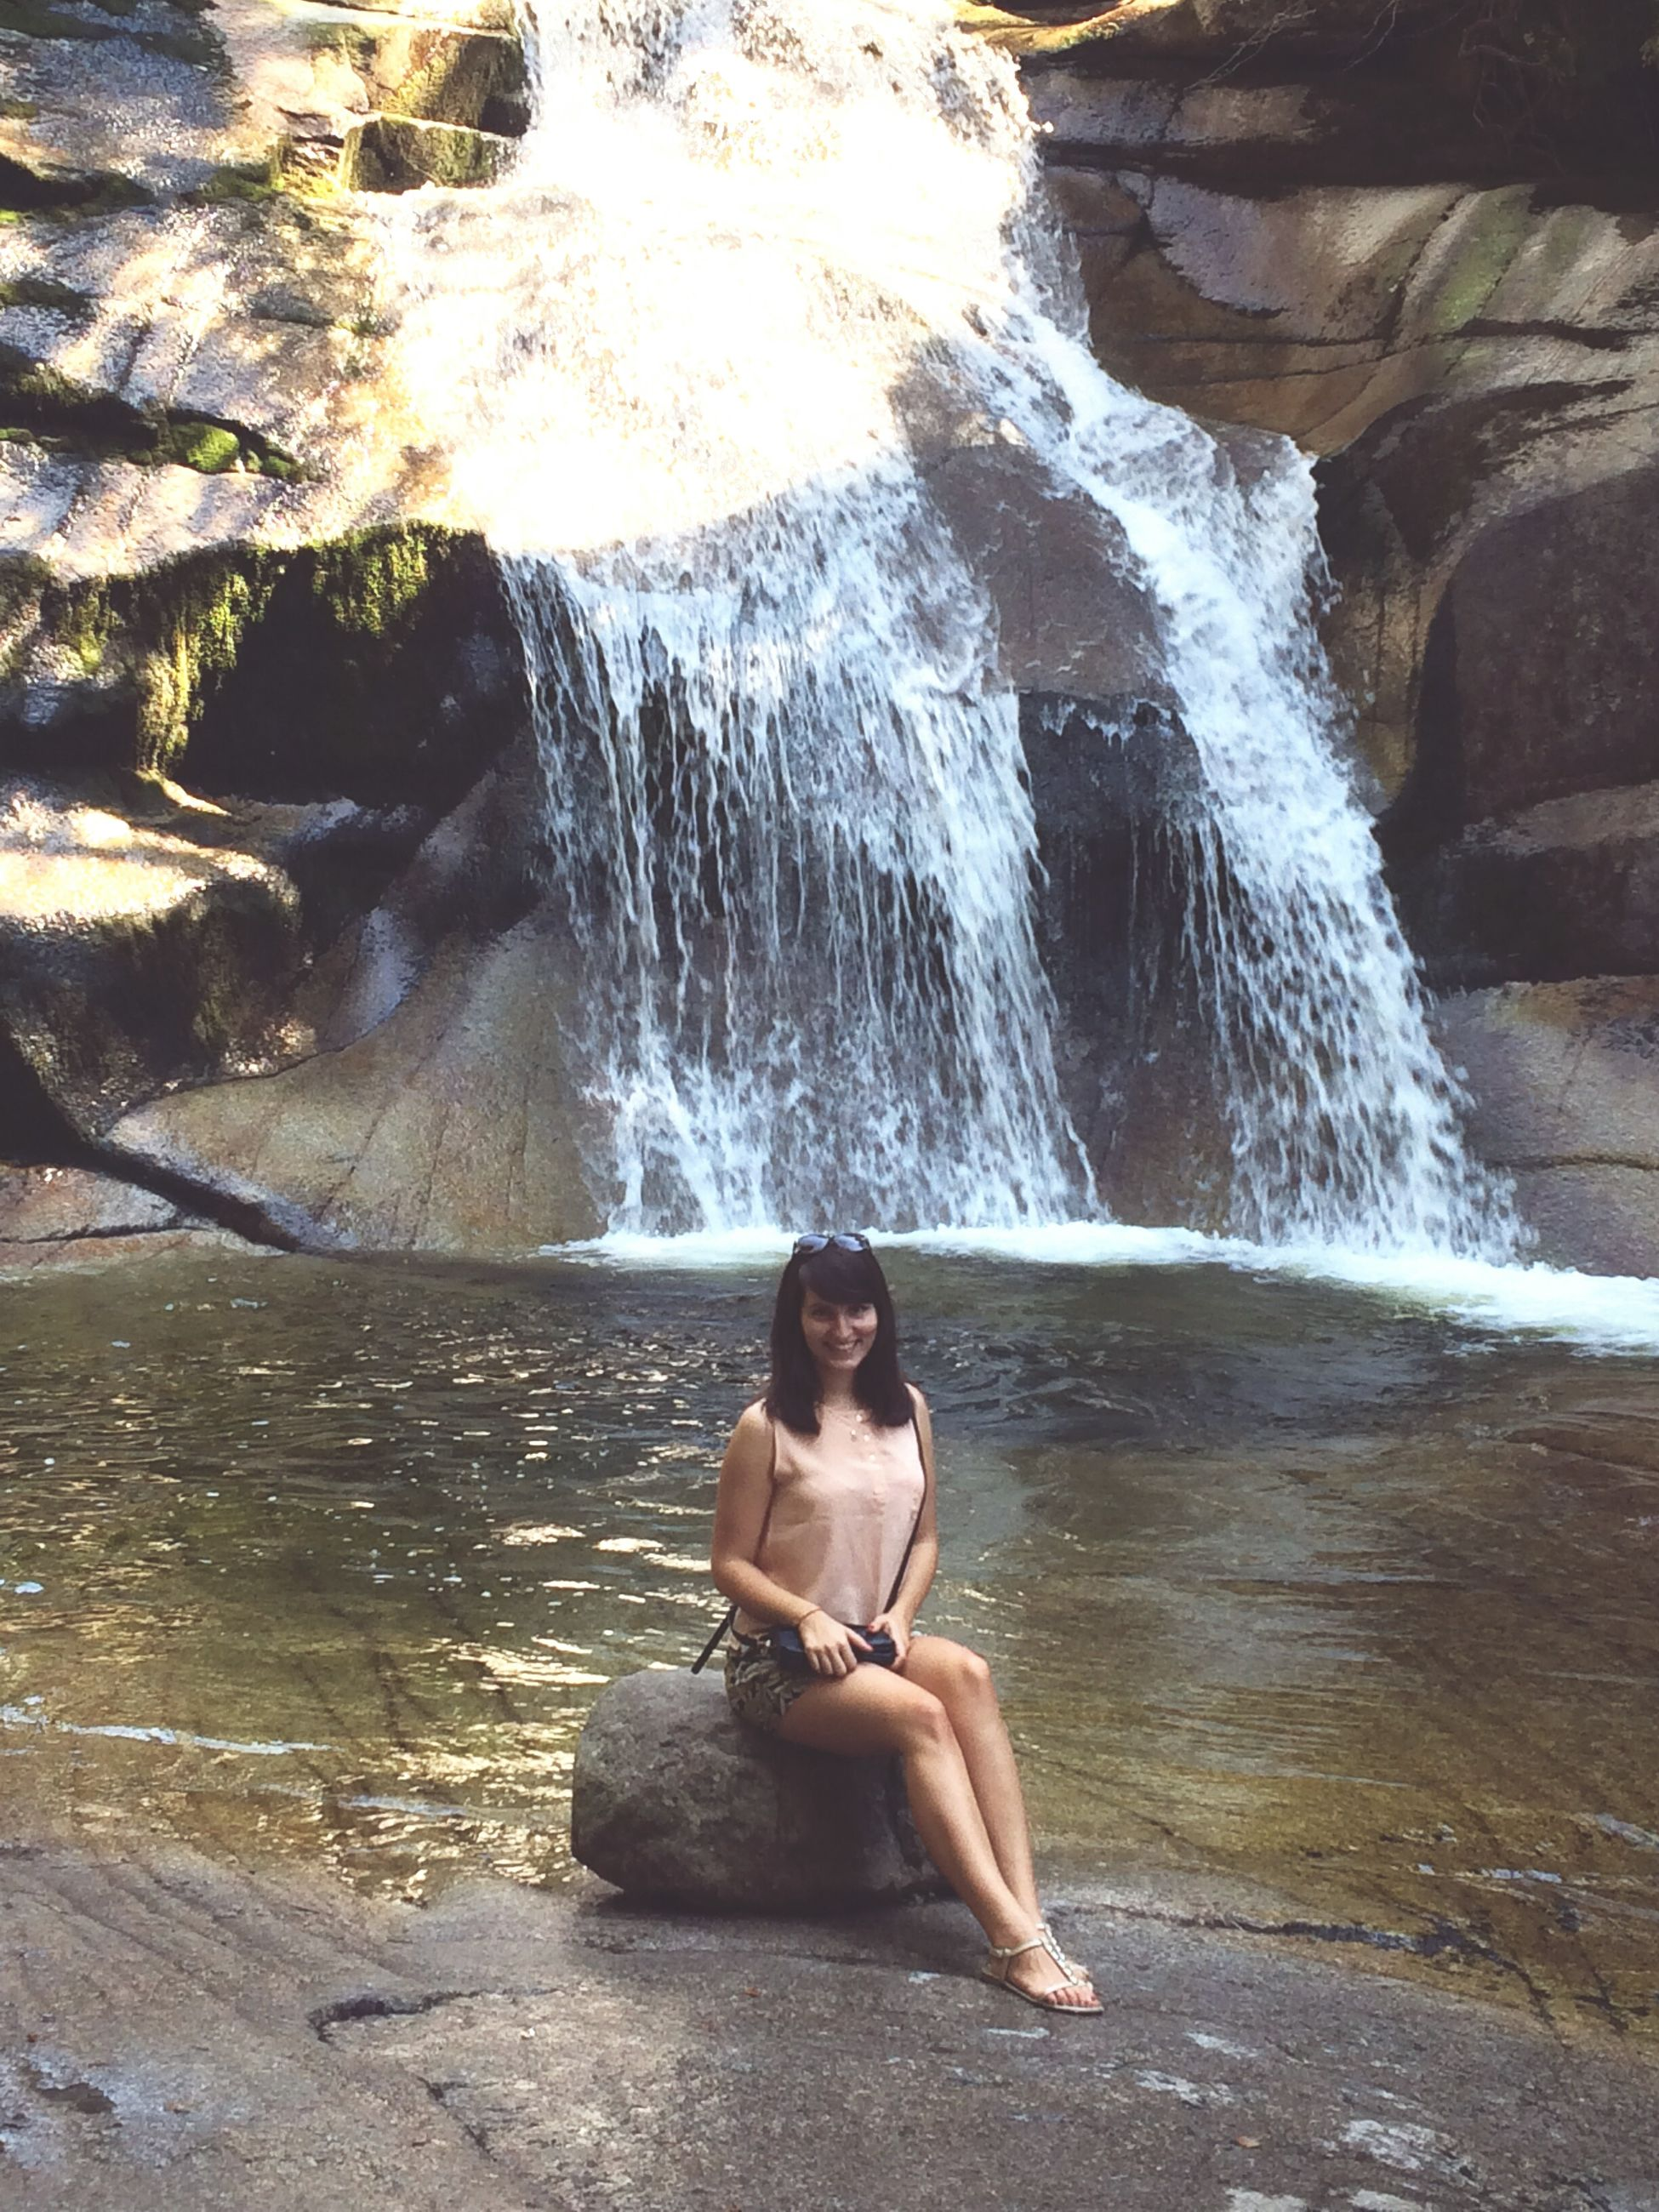 water, rock - object, lifestyles, leisure activity, motion, sitting, full length, rear view, splashing, waterfall, surf, nature, vacations, rock formation, flowing water, beauty in nature, relaxation, day